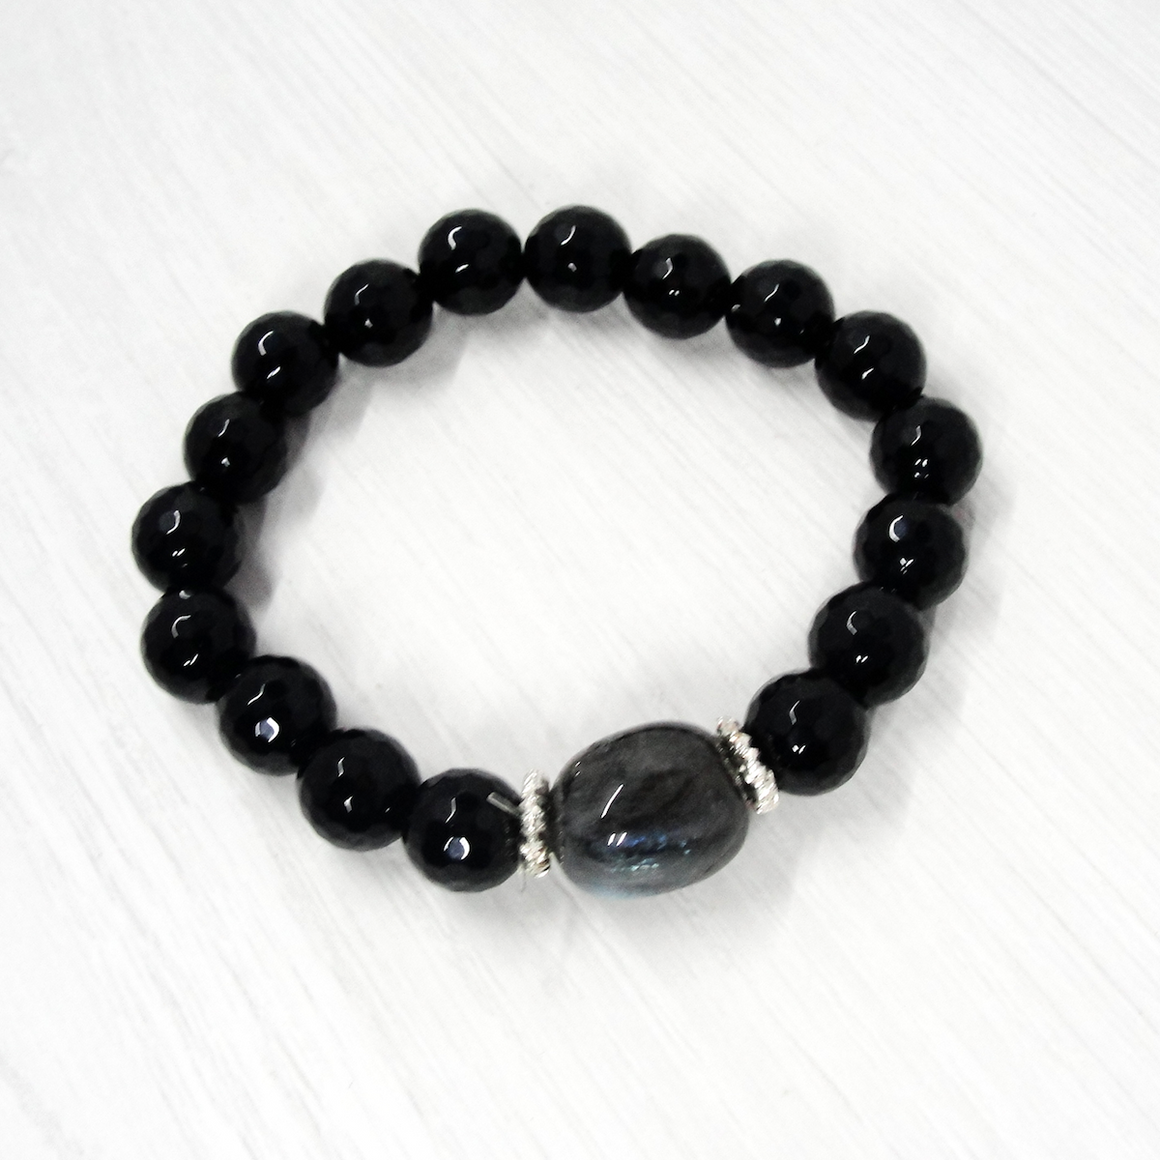 Black Onyx and Labradorite Stretch Bracelet